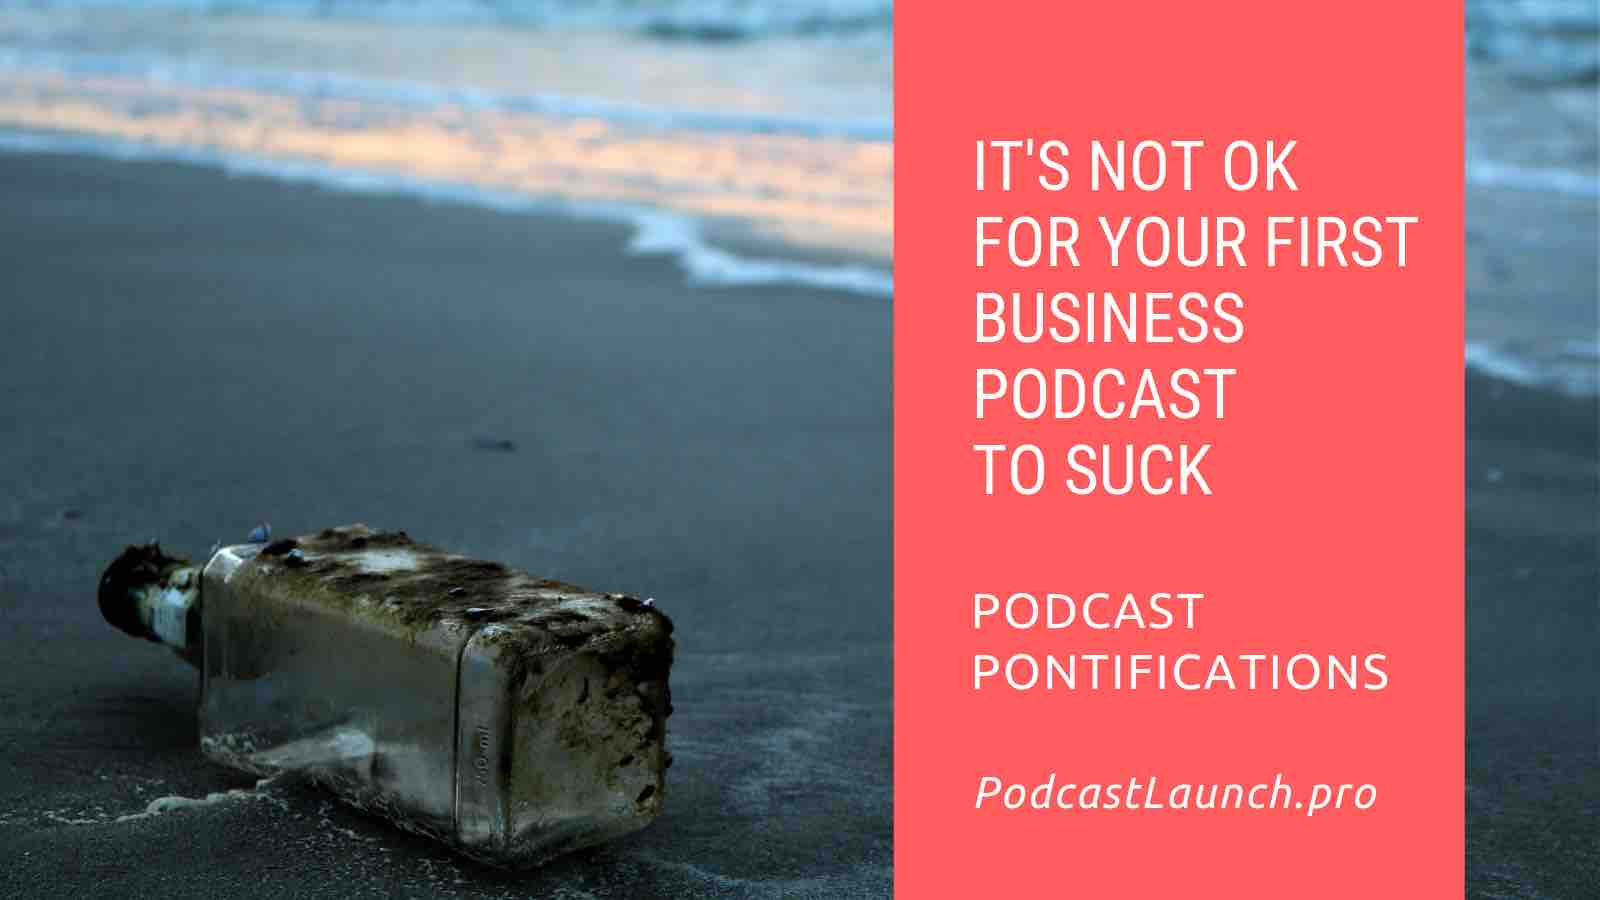 It's Not OK For Your First Business Podcast Episode To Suck